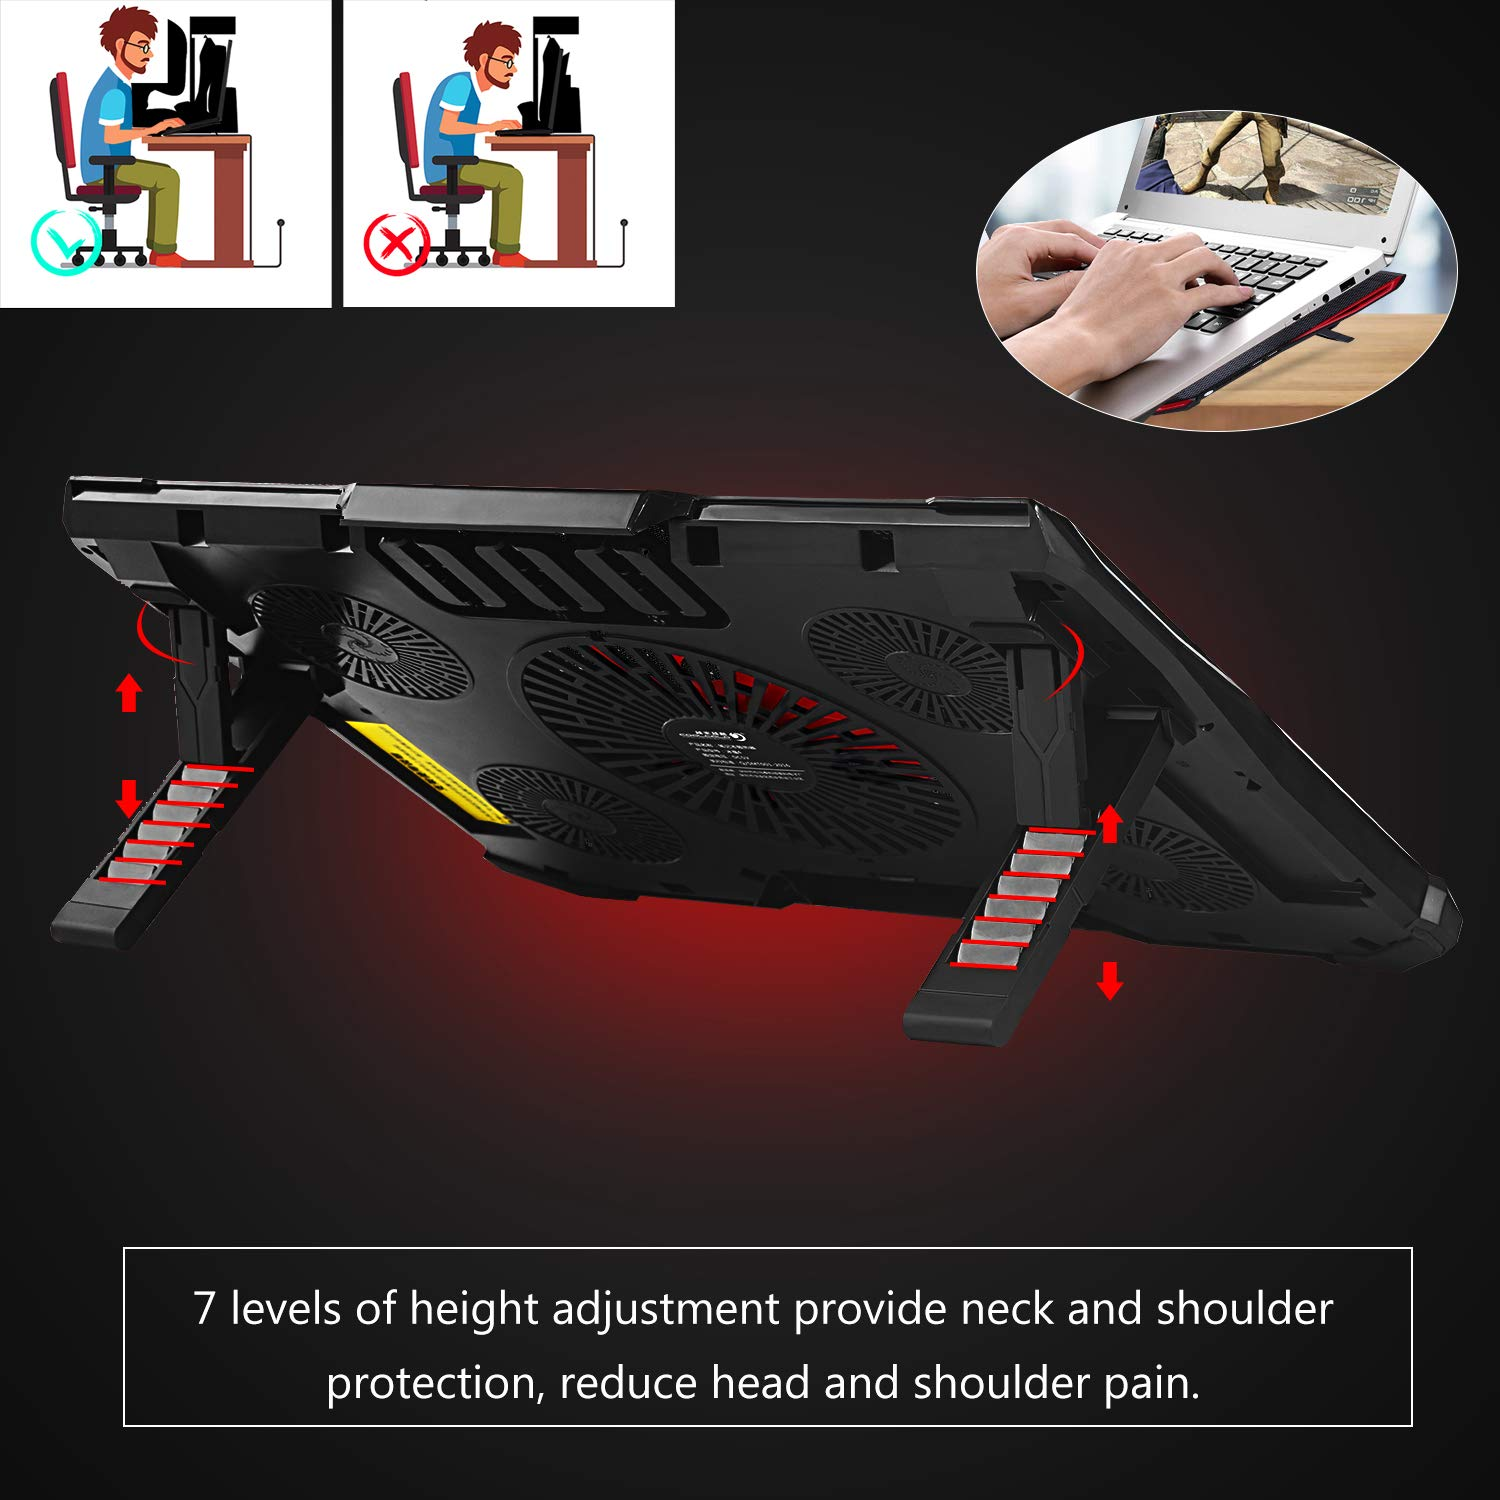 Red LED Light Notebook Cooler with 5 High Speed /& Quiet Fans Max at 2200 RPM Fit 12-17 inch Black+Red Aieruma Laptop Cooling Pad Adjustable Mount Stand /& Fan Speed Controller Dual USB 2.0 Ports